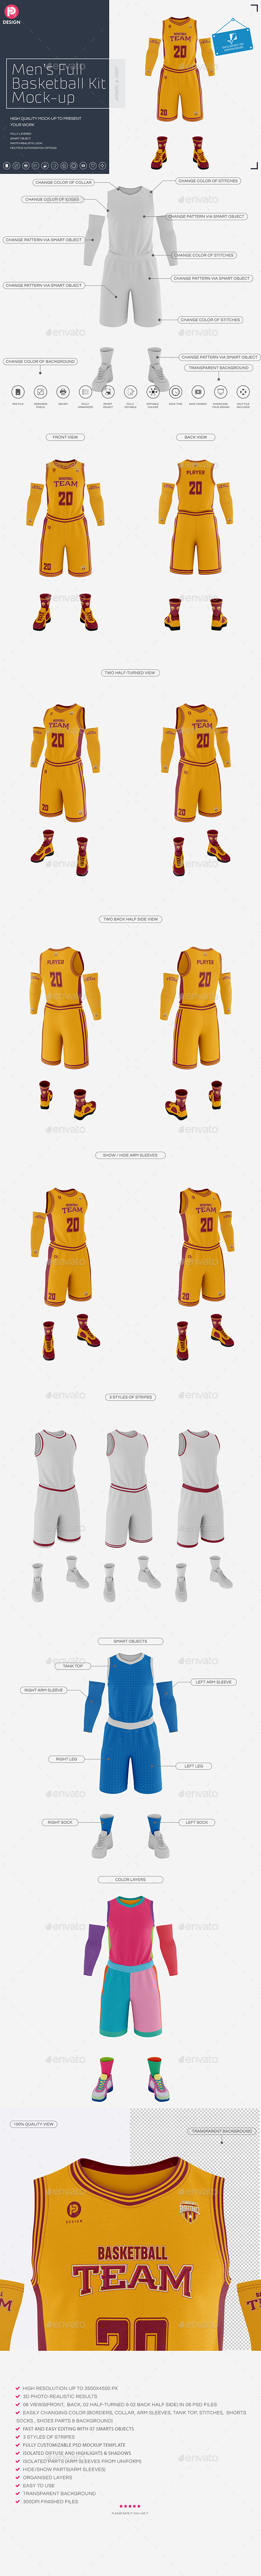 Men's Full Basketball Kit Crew-Neck Jersey Mock-Up - Miscellaneous Apparel